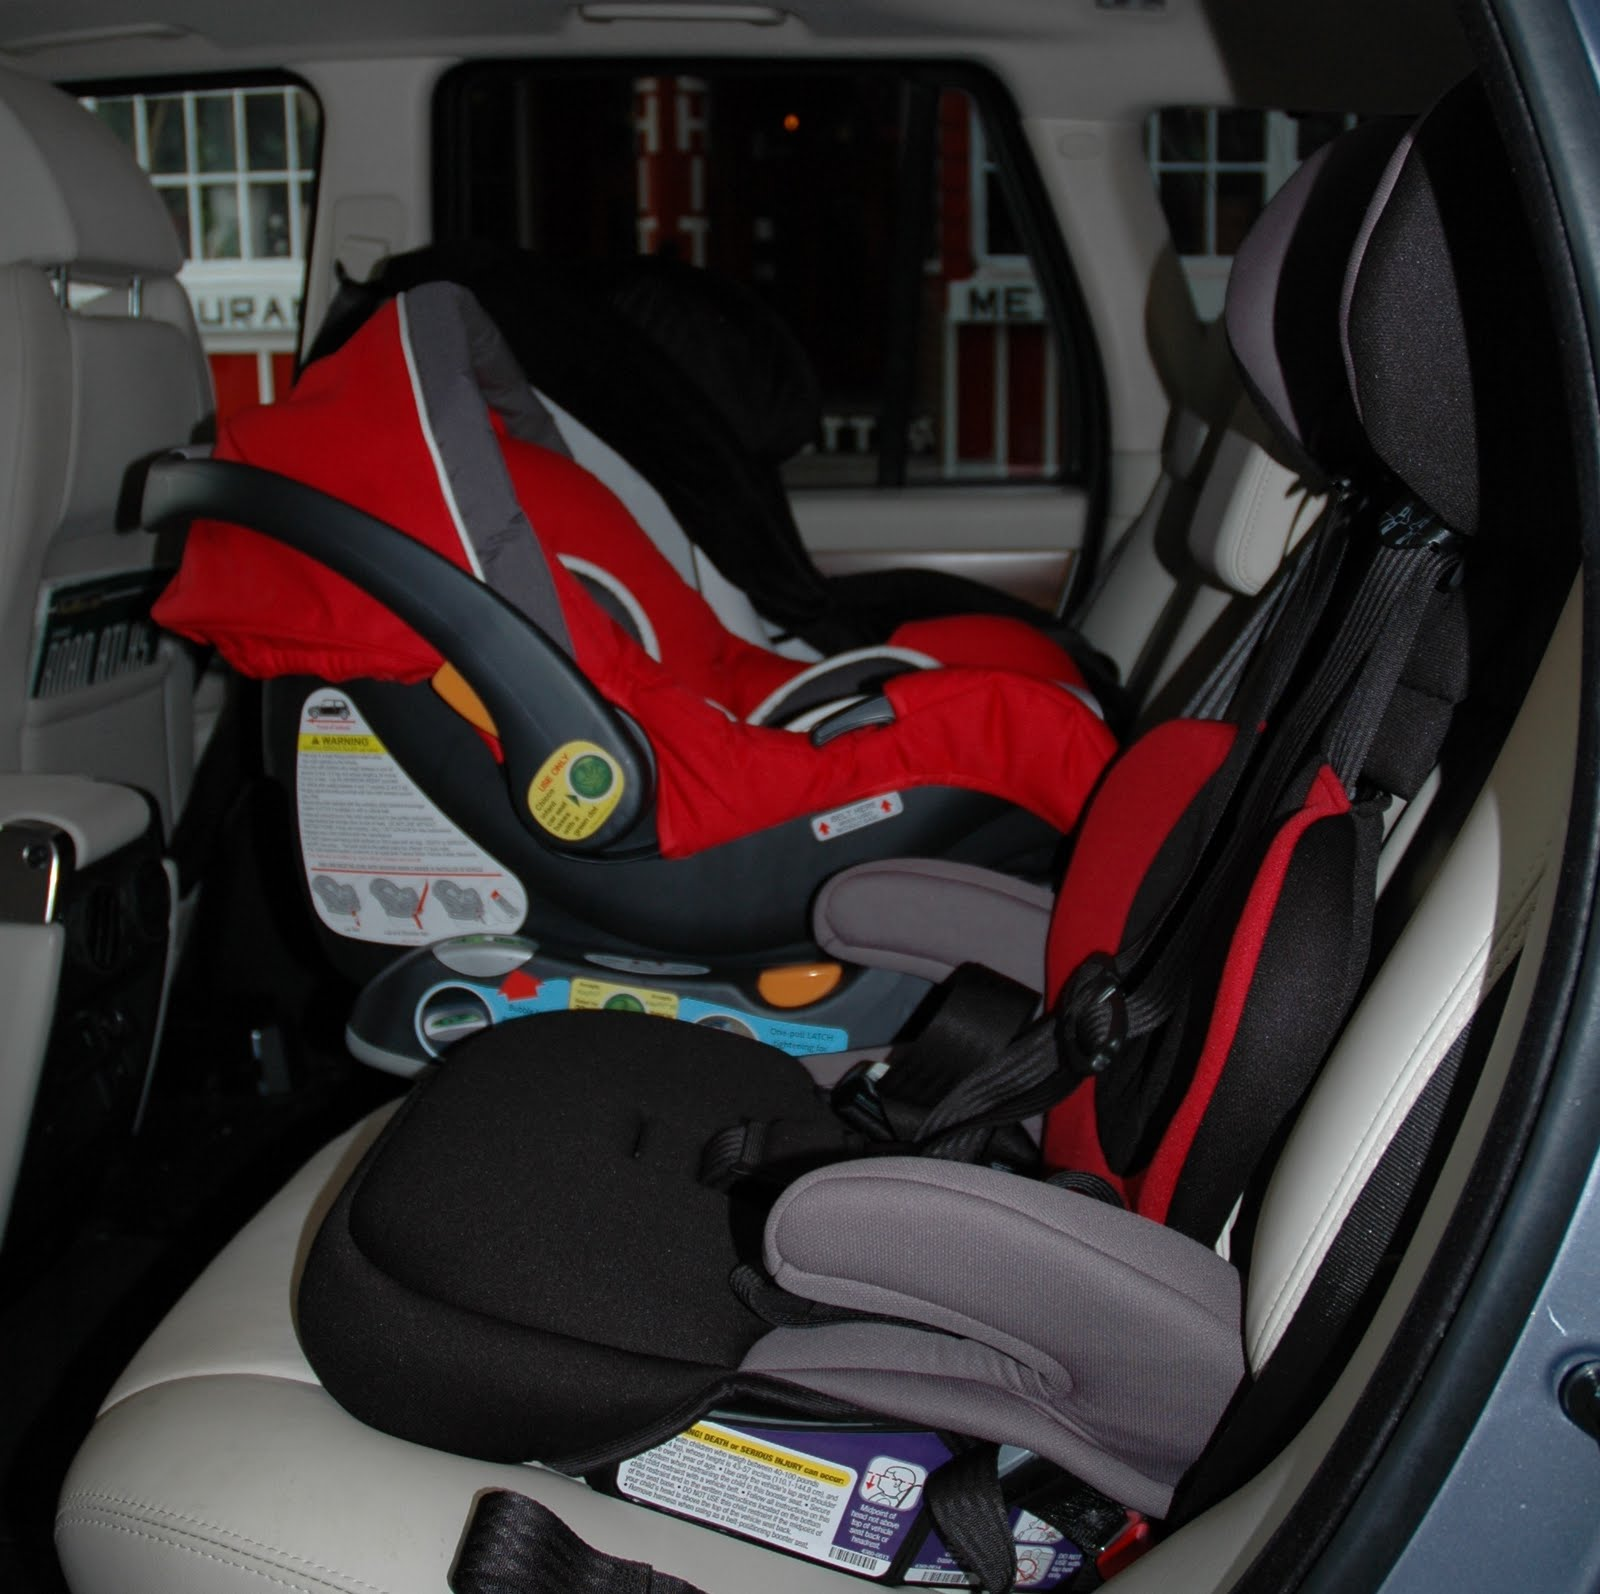 Acura Mdx Car Seat Fitting